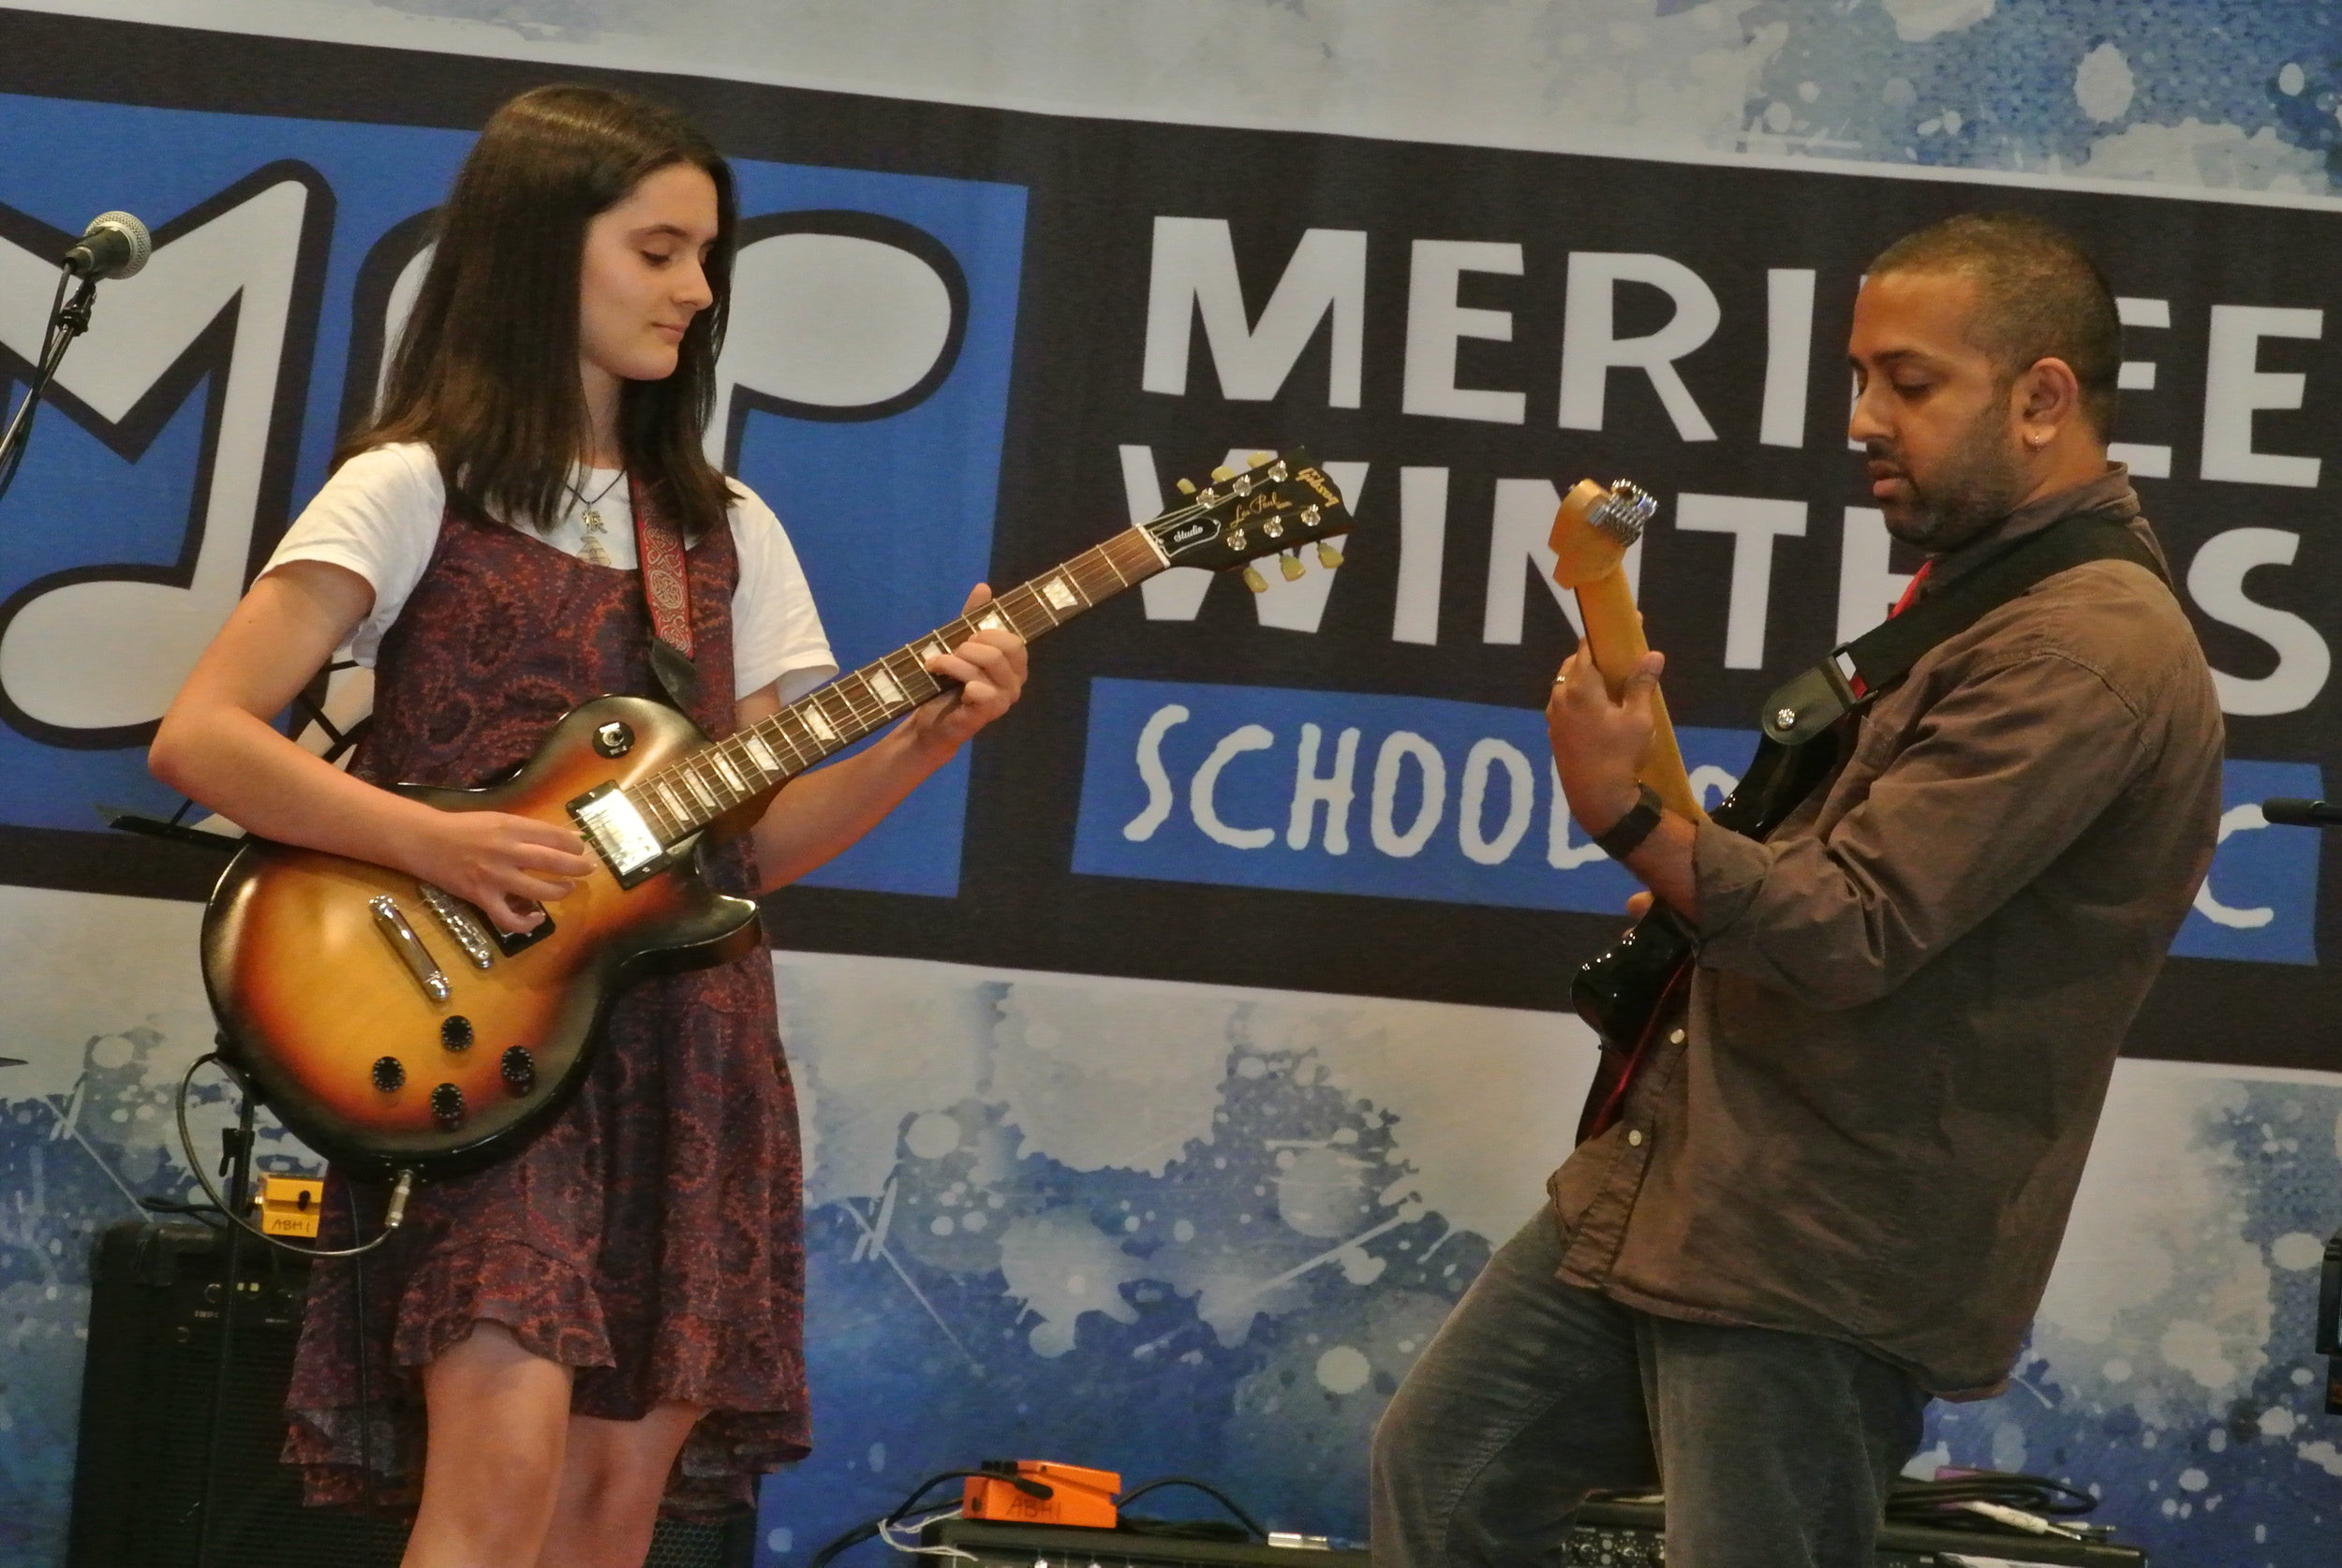 Copy of main line in home guitar lessons with Meridee winters school of music